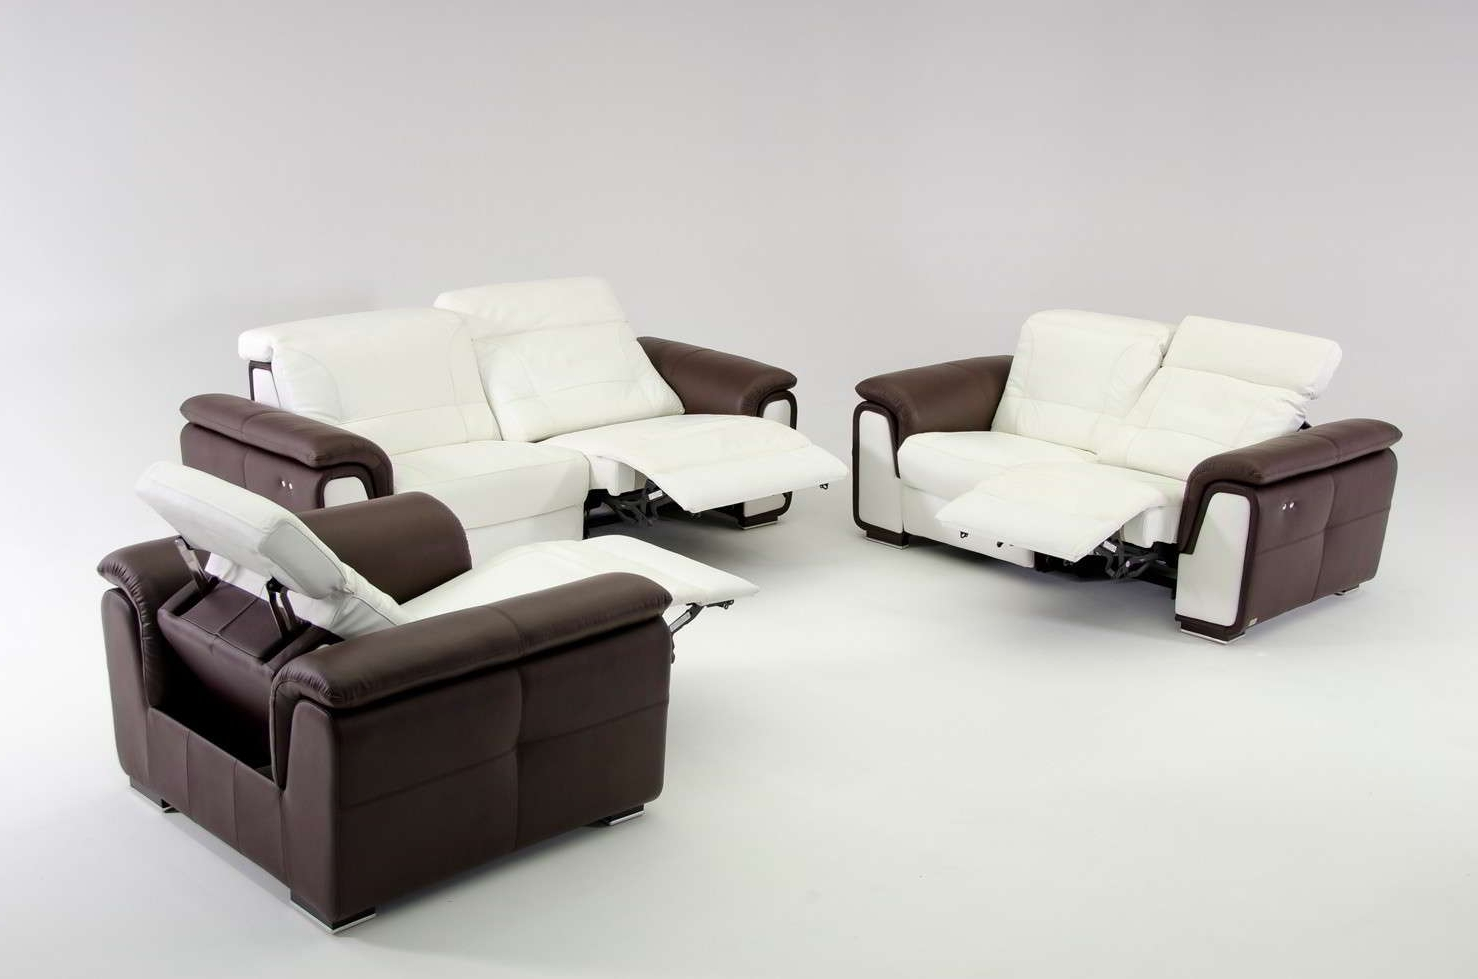 Modern Reclining Leather Sofas Throughout Widely Used Contemporary Reclining Couch Leather — Fabrizio Design : Very (View 9 of 20)